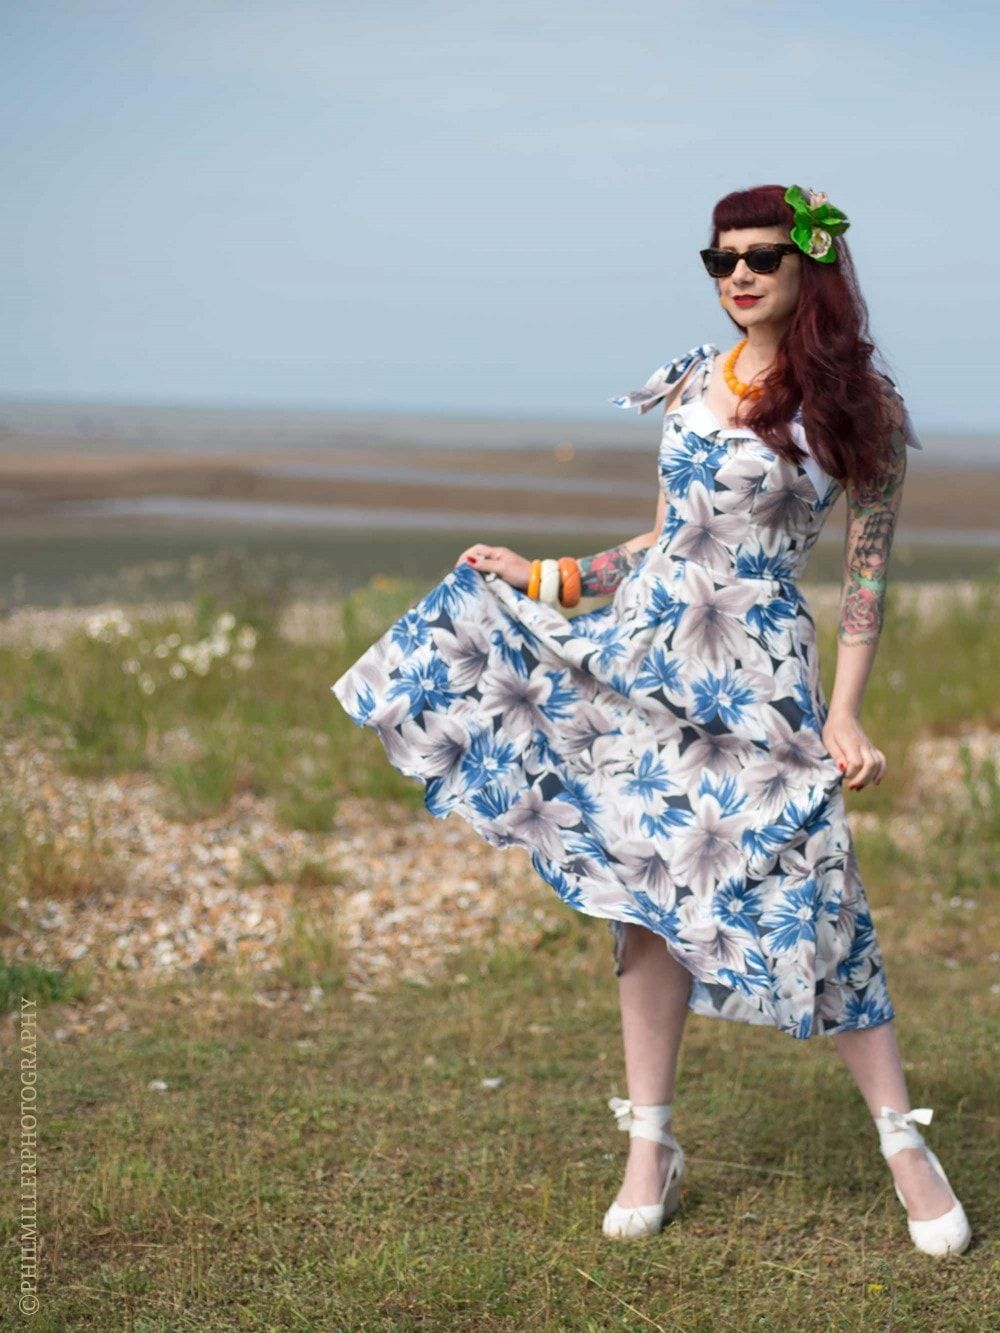 This beautiful floral print comes in some of your favourite VOH styles, like the gorgeous Sarong Set or charming Runaround Sue! 😍 Be ready for the warm season in pretty blue tones! Which is your favourite style?  #vivienofholloway@vivienofholloway  @katiepedlow @annafurlaxis @remixvintageshoes  #madeinlondon #vintagestyle #vintagefashion #retro #pinupgirl #pinupstyle  #slowfashion  #sarongdress #tikiparty  #hawaiiandress #50sdress #tikistyle #daydress #1940sdress #runaroundsue